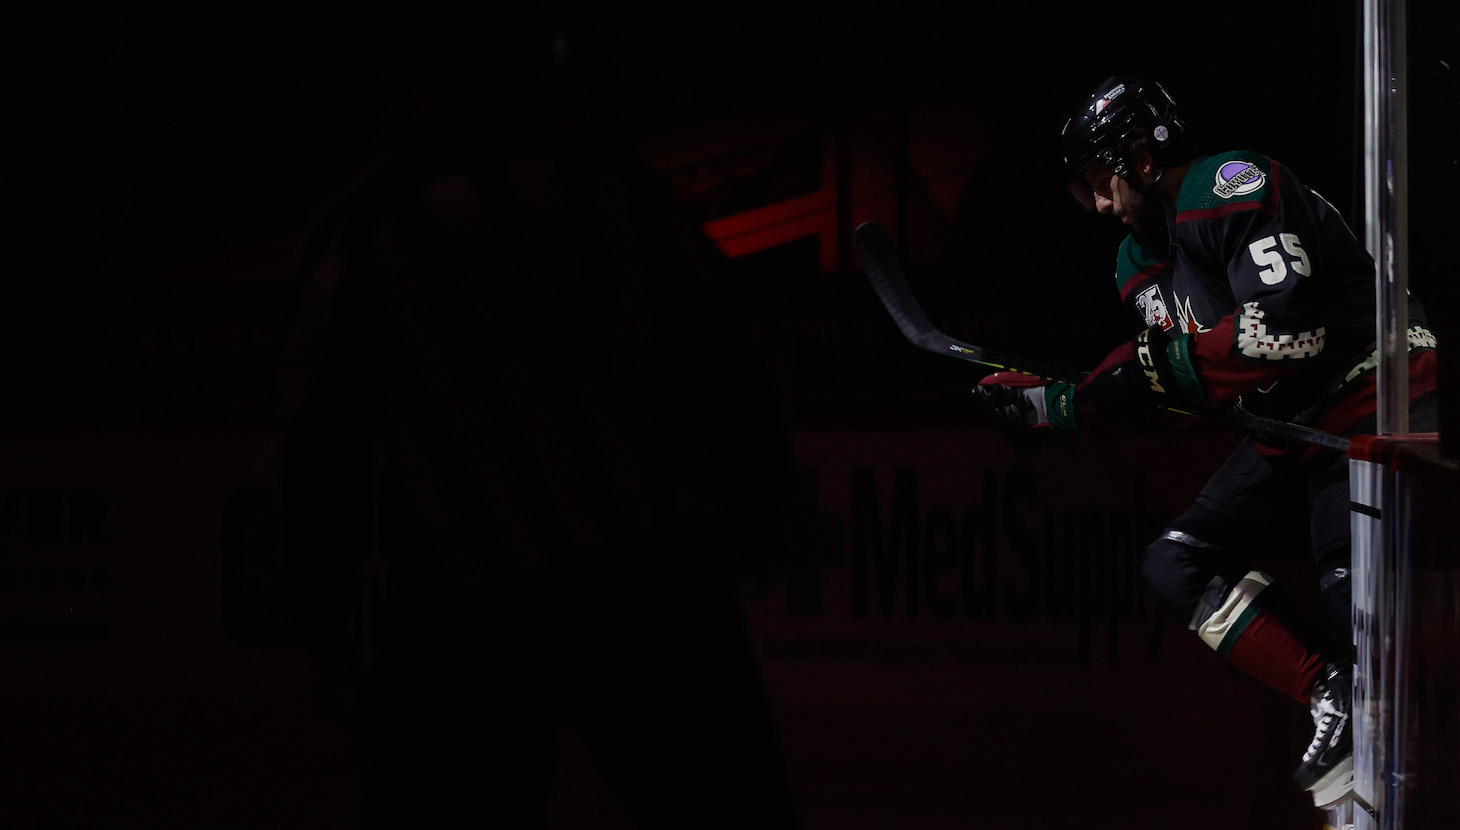 GLENDALE, ARIZONA - FEBRUARY 15: Jason Demers #55 of the Arizona Coyotes skates onto the ice before the start of the NHL game against the St. Louis Blues at Gila River Arena on February 15, 2021 in Glendale, Arizona. (Photo by Christian Petersen/Getty Images)